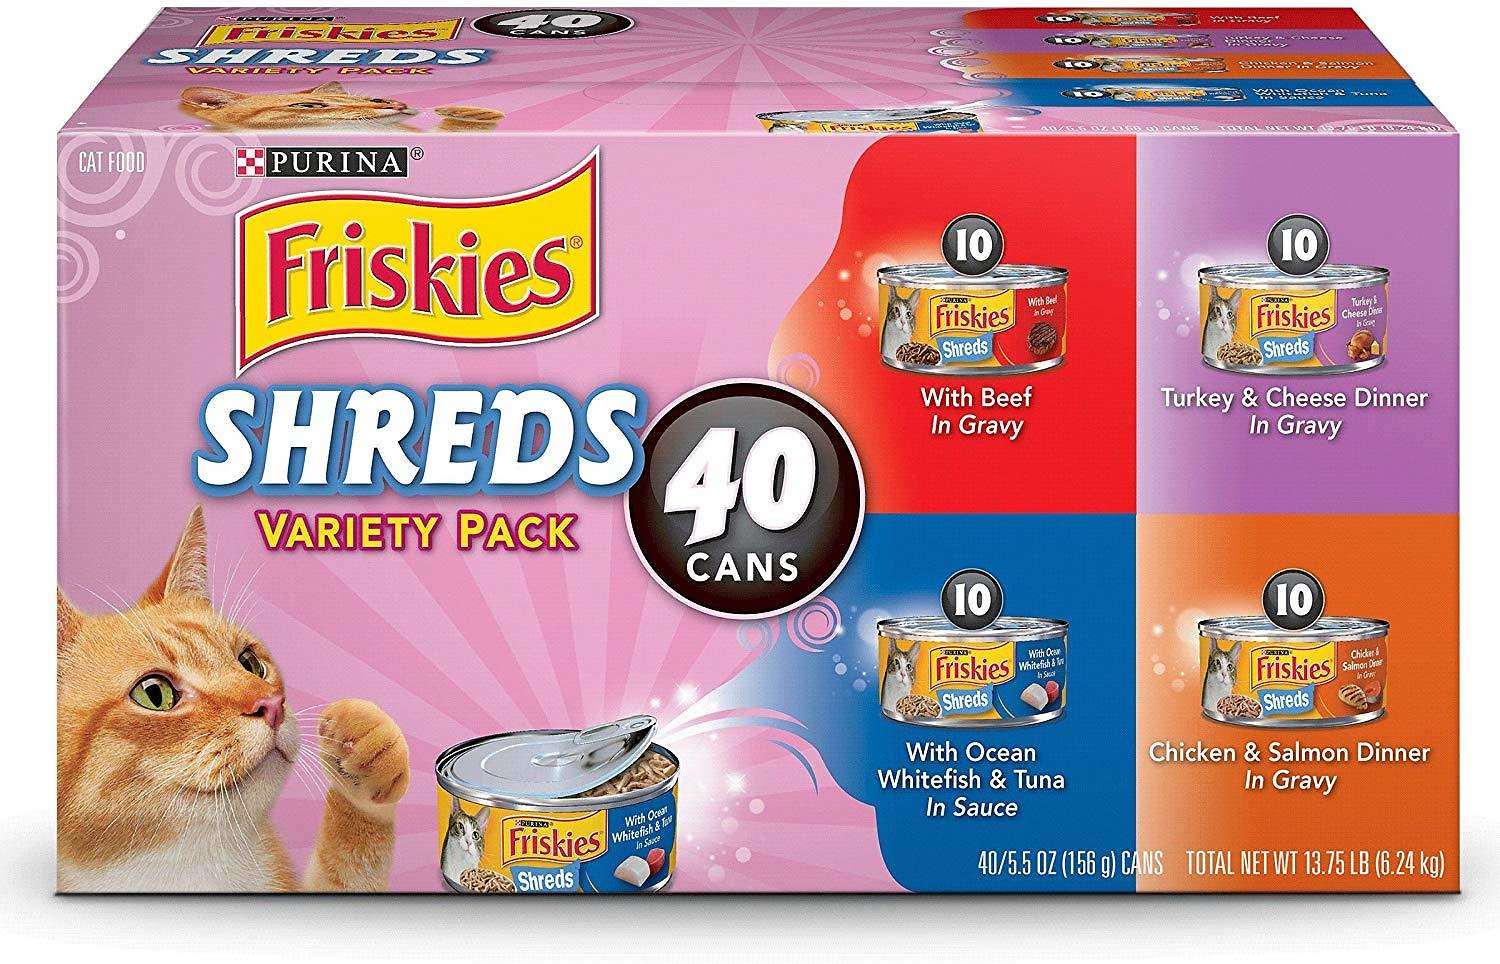 Purina Friskies Shreds In Gravy Adult Wet Cat Food Variety Pack - (40) 5.5 Oz. Cans